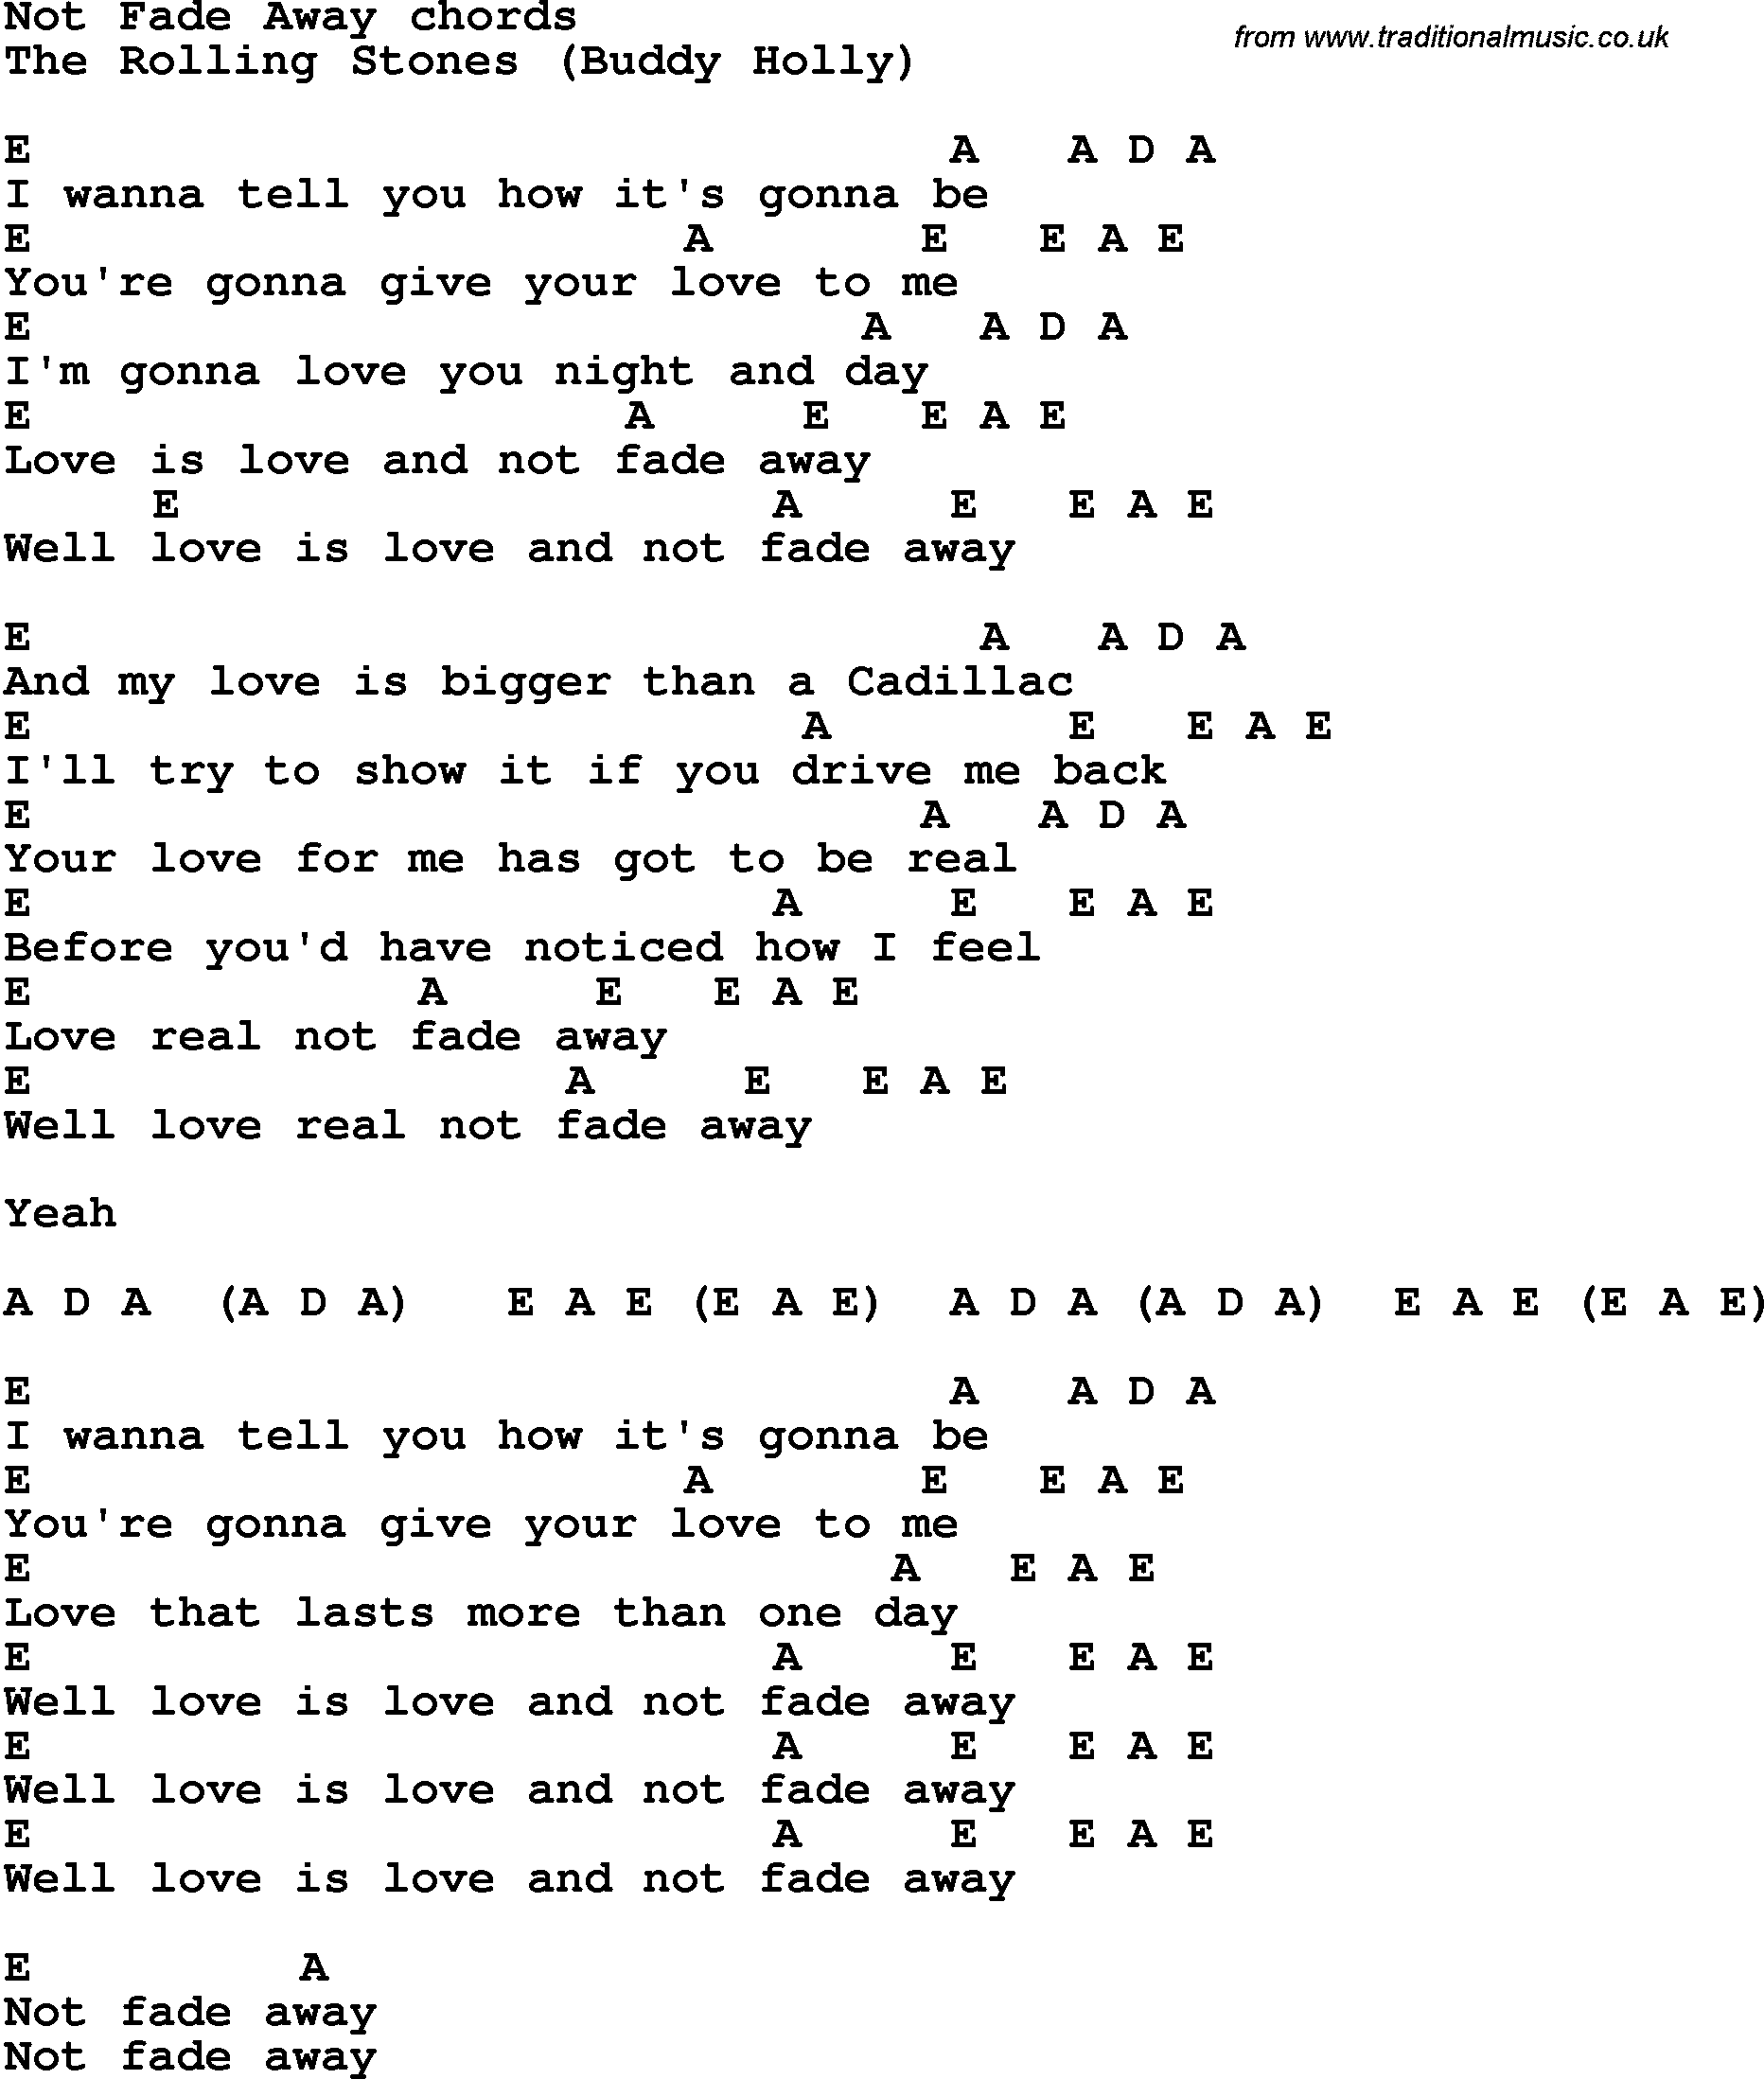 Song lyrics with guitar chords for Not Fade Away - The ... Rolling Stones Songs